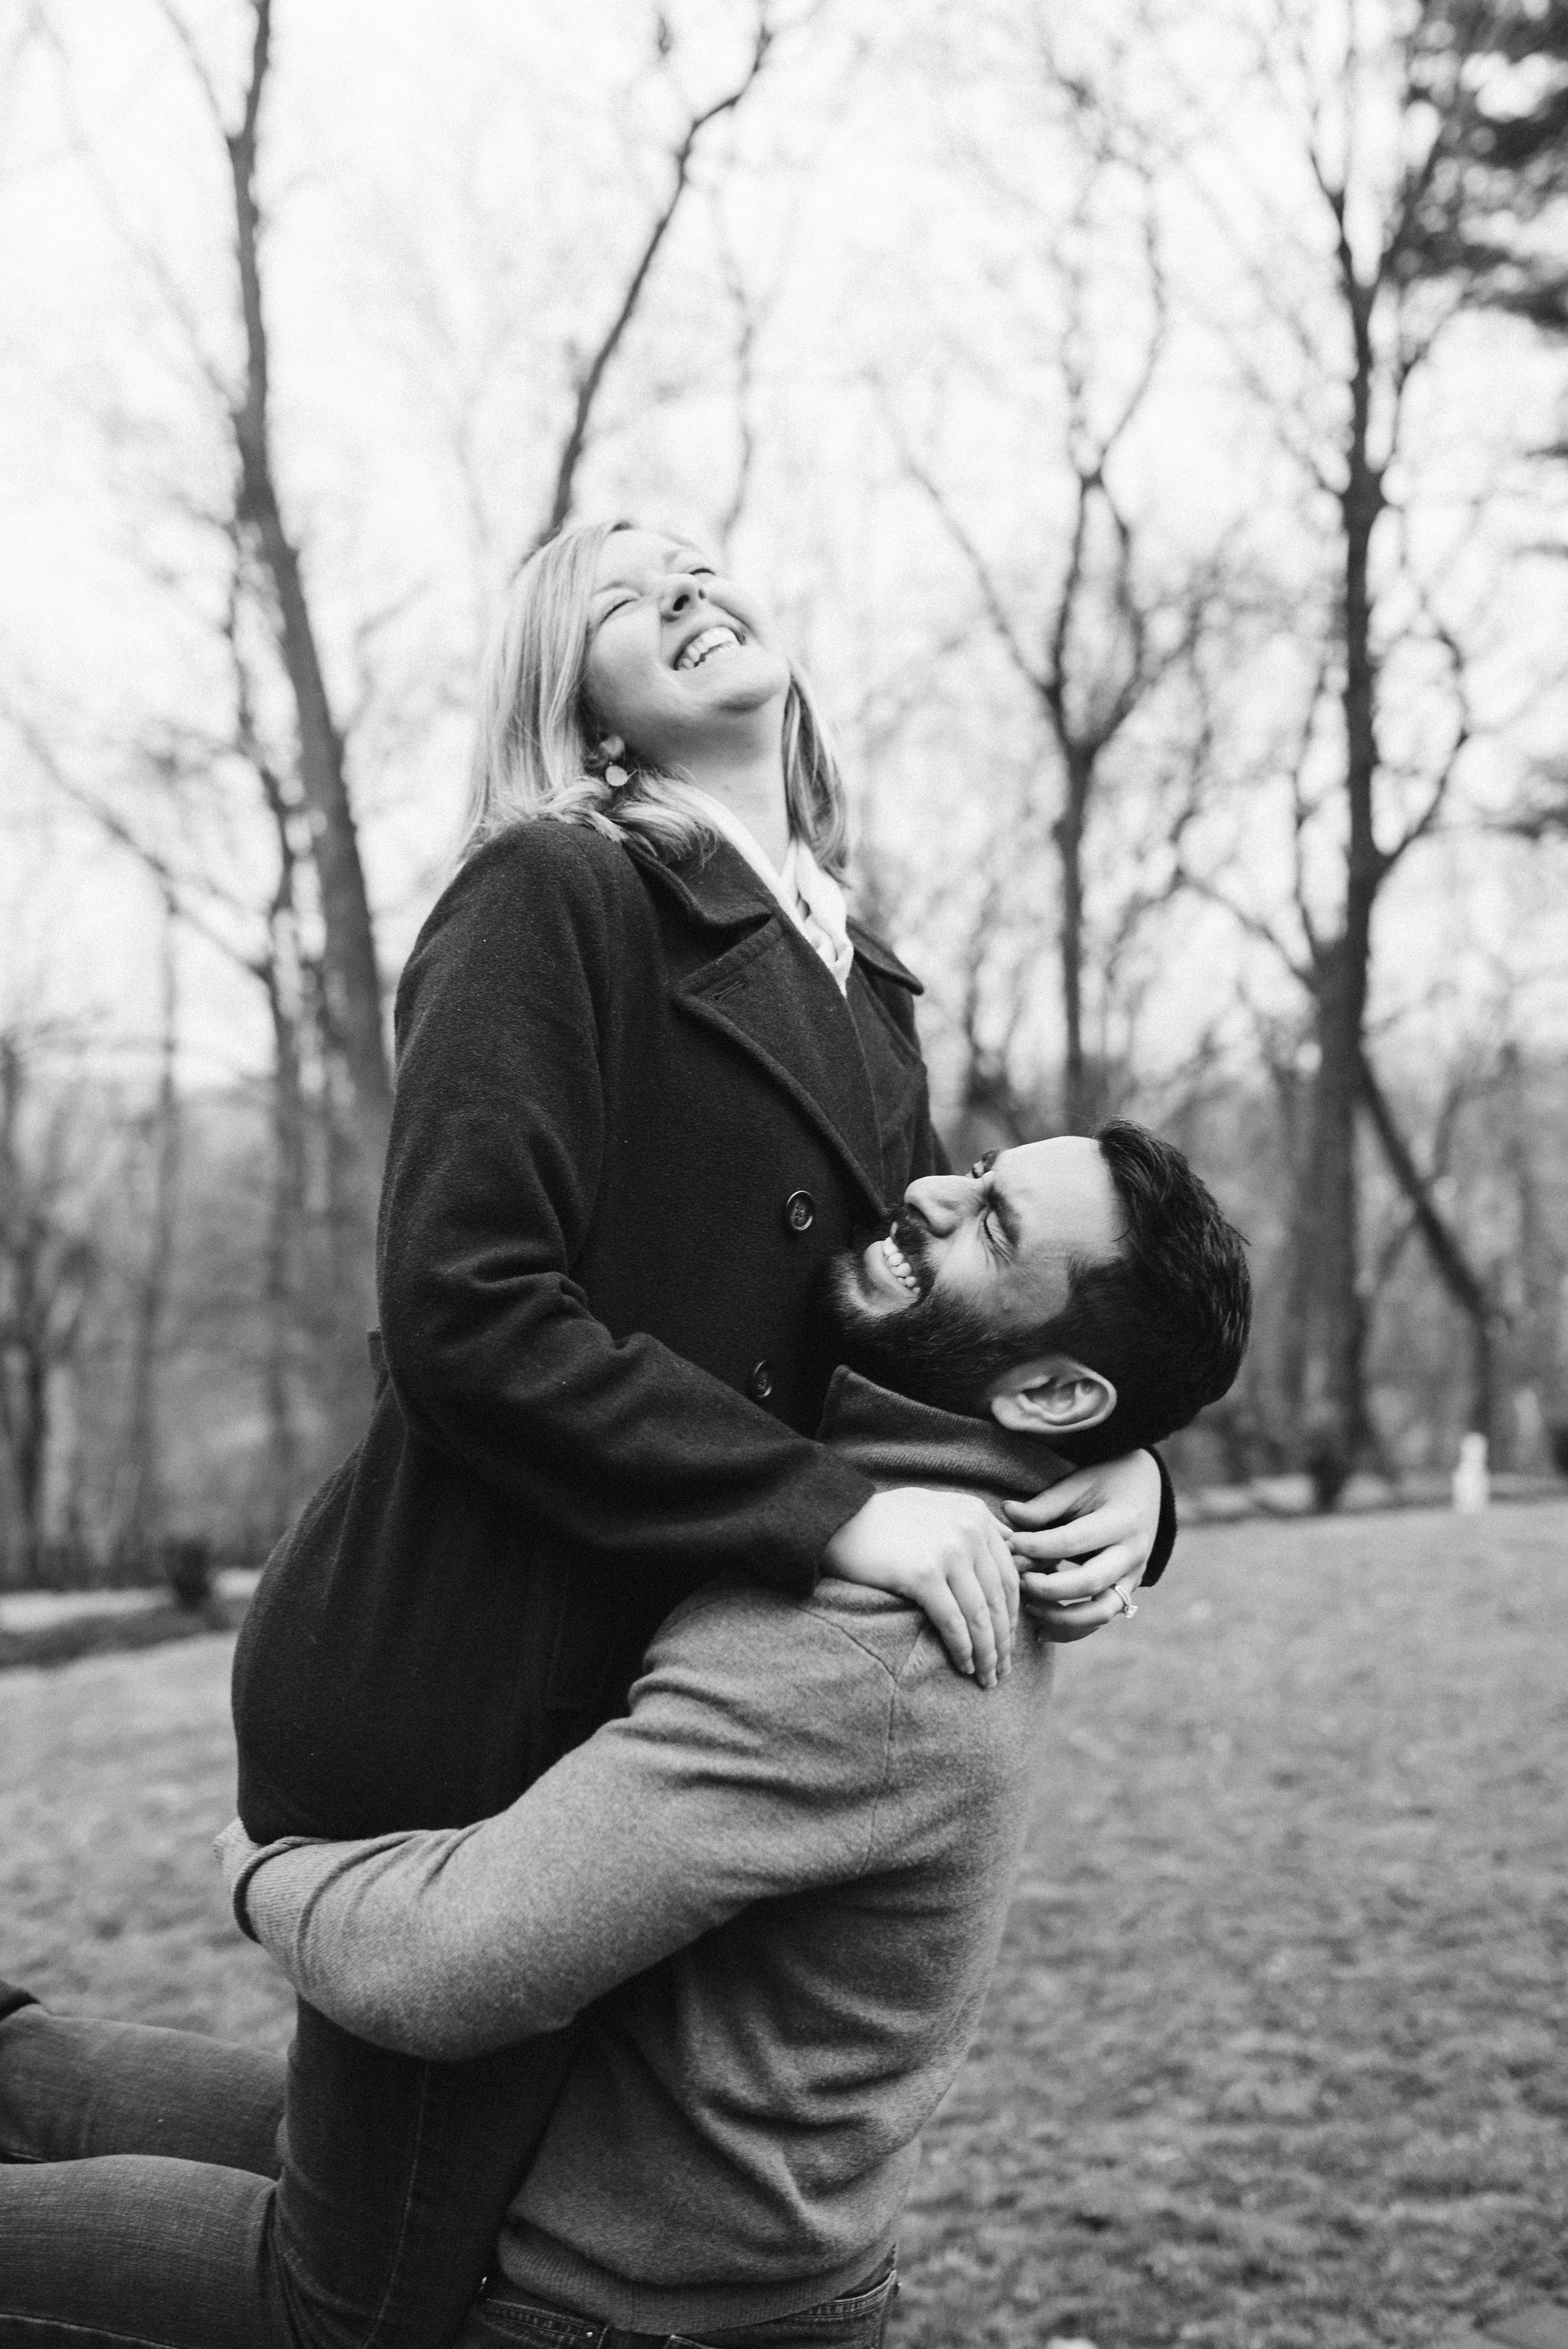 Engagement Photos, Rainy, Ellicott City, Maryland Wedding Photographer, Winter, Overhills Mansion, Classic, Traditional, Outdoor, Groom Lifting Bride, Black and White Photo